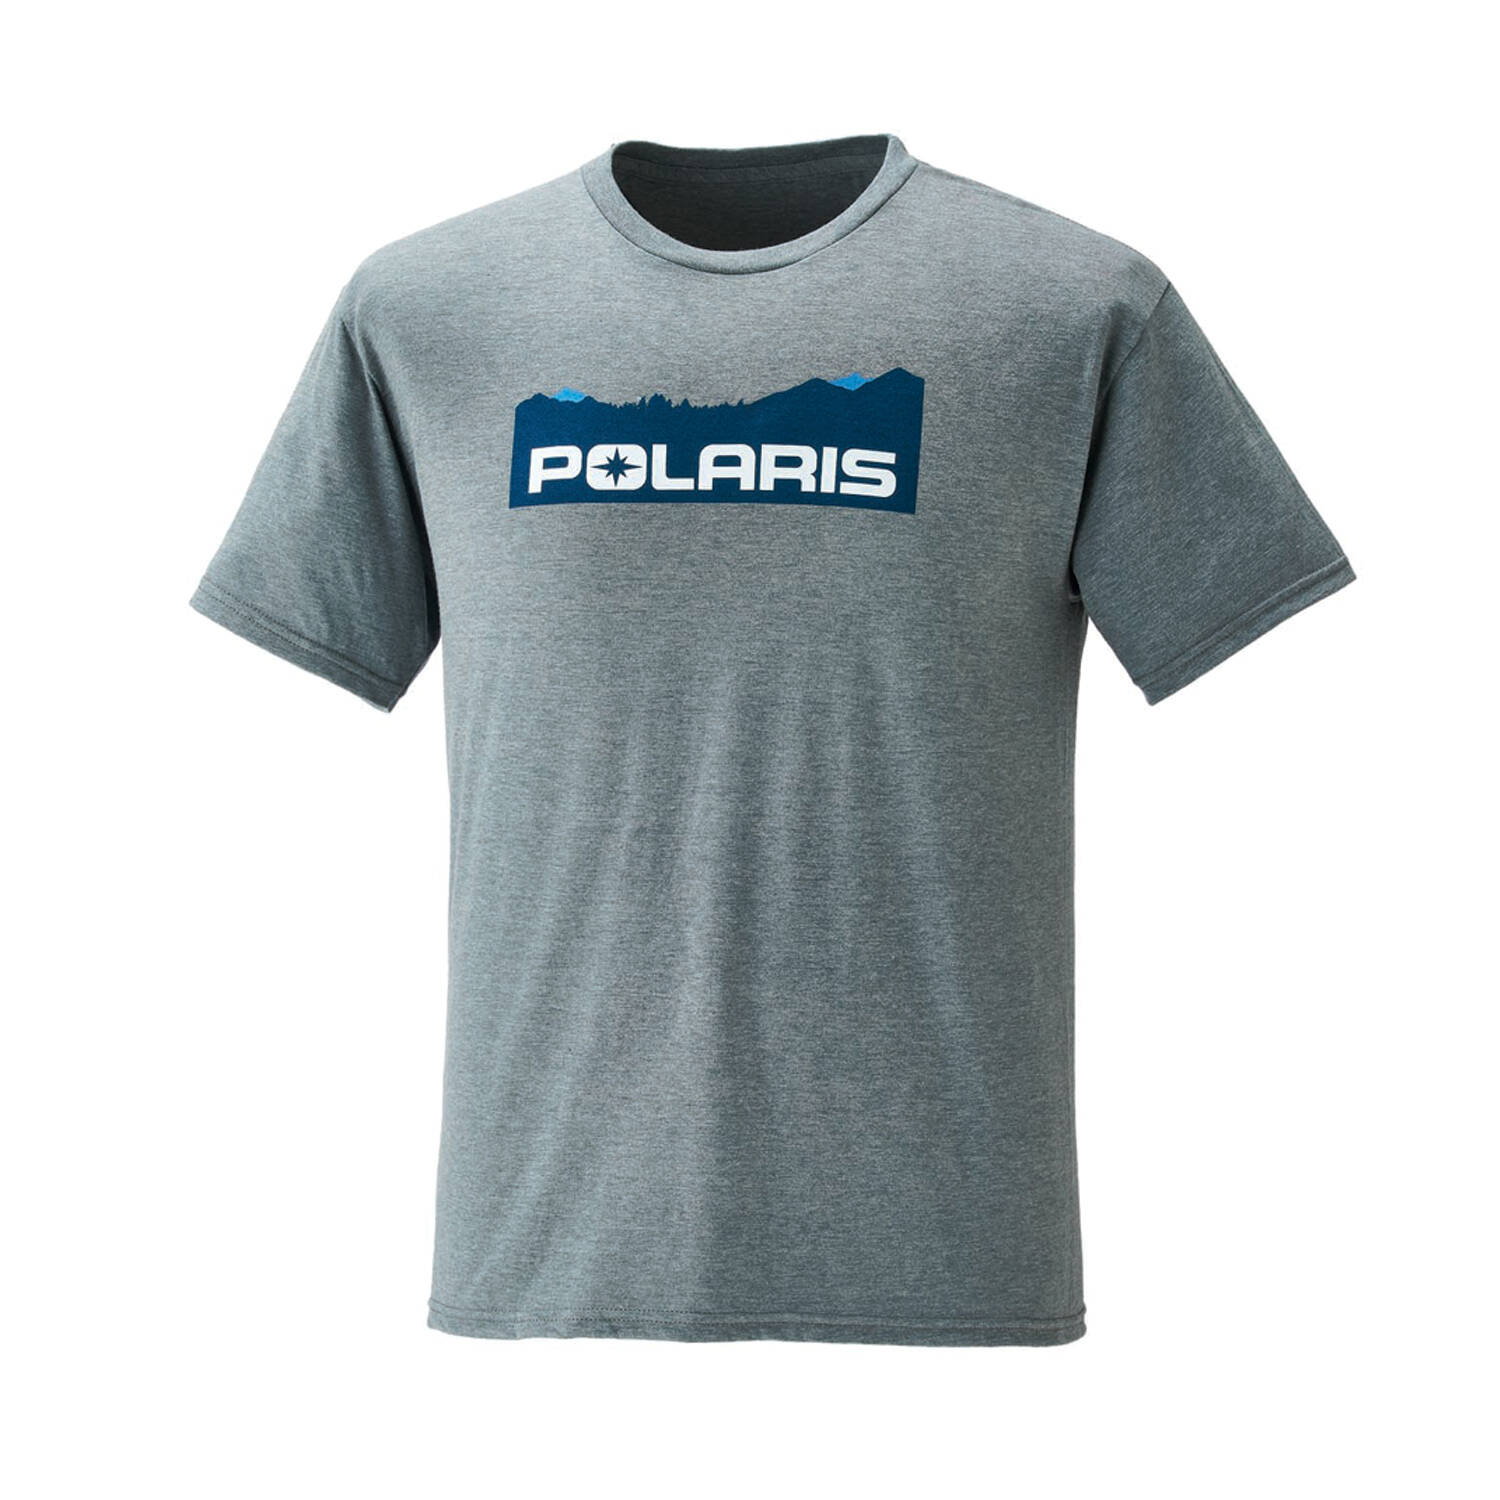 Men's Short-Sleeve Mountain-Scape Graphic Tee with Logo, Ash Heather